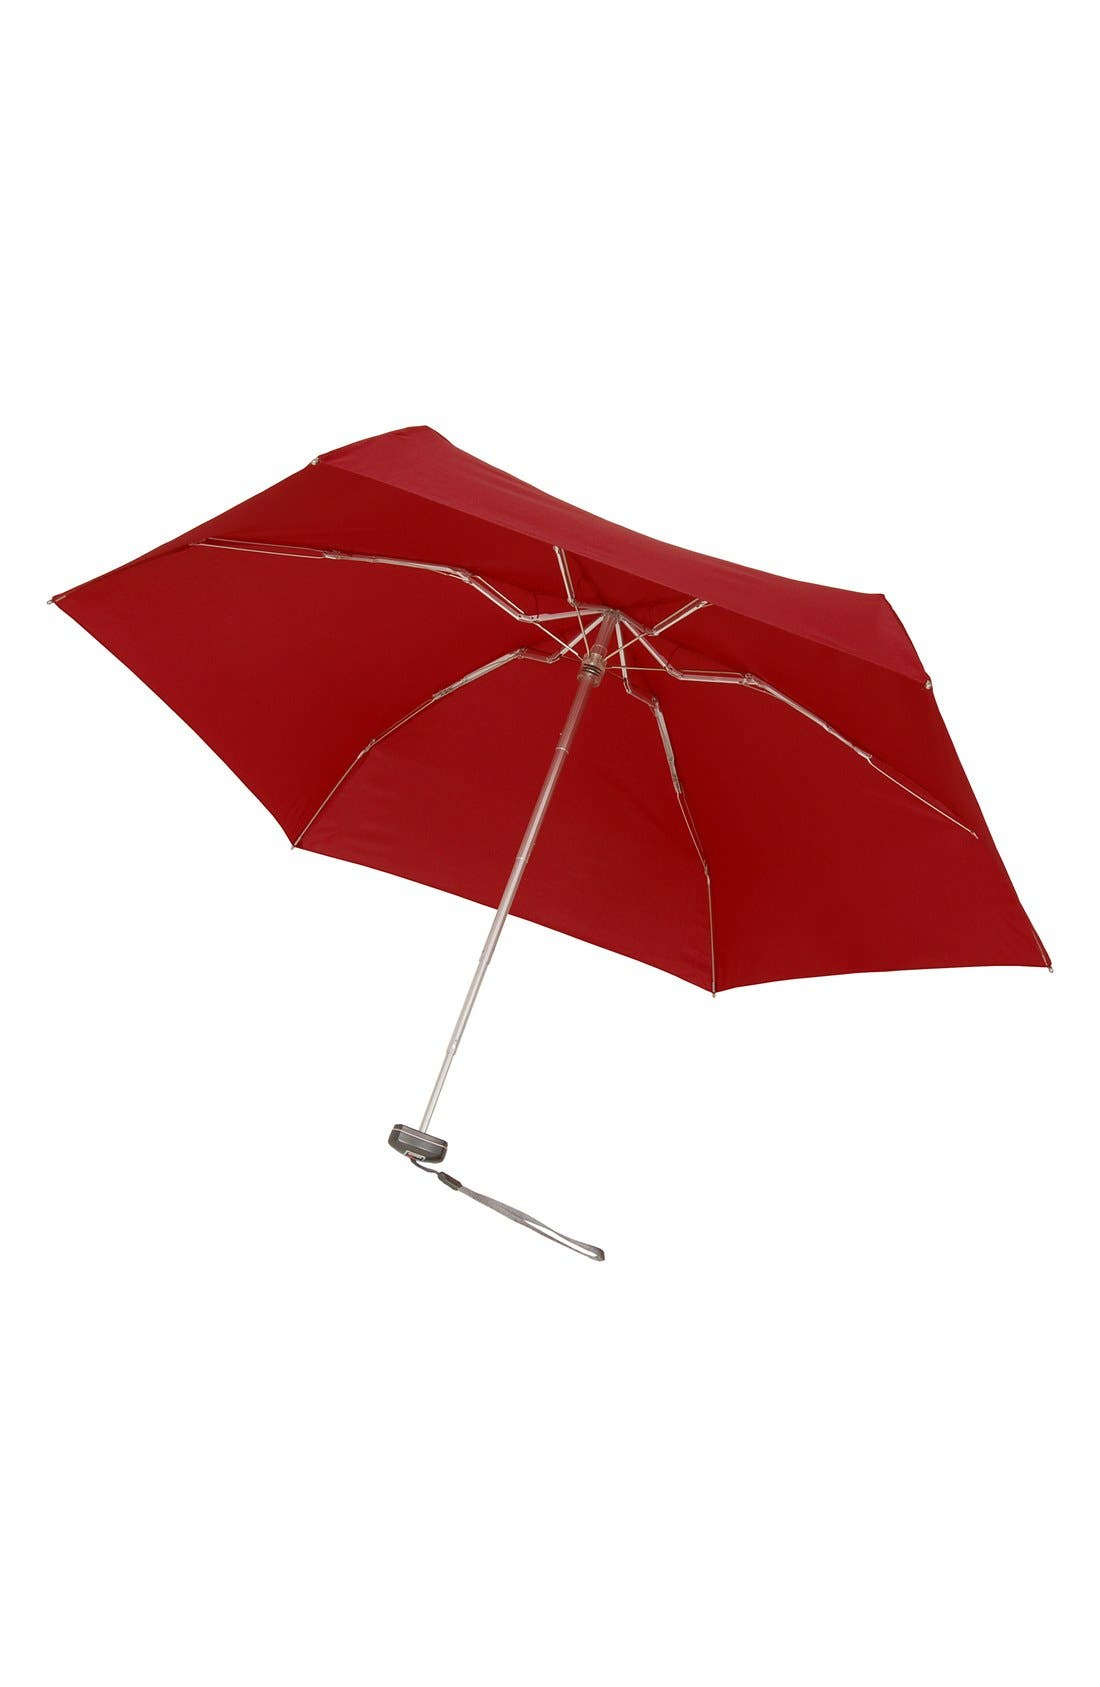 KNIRPS Travel Umbrella